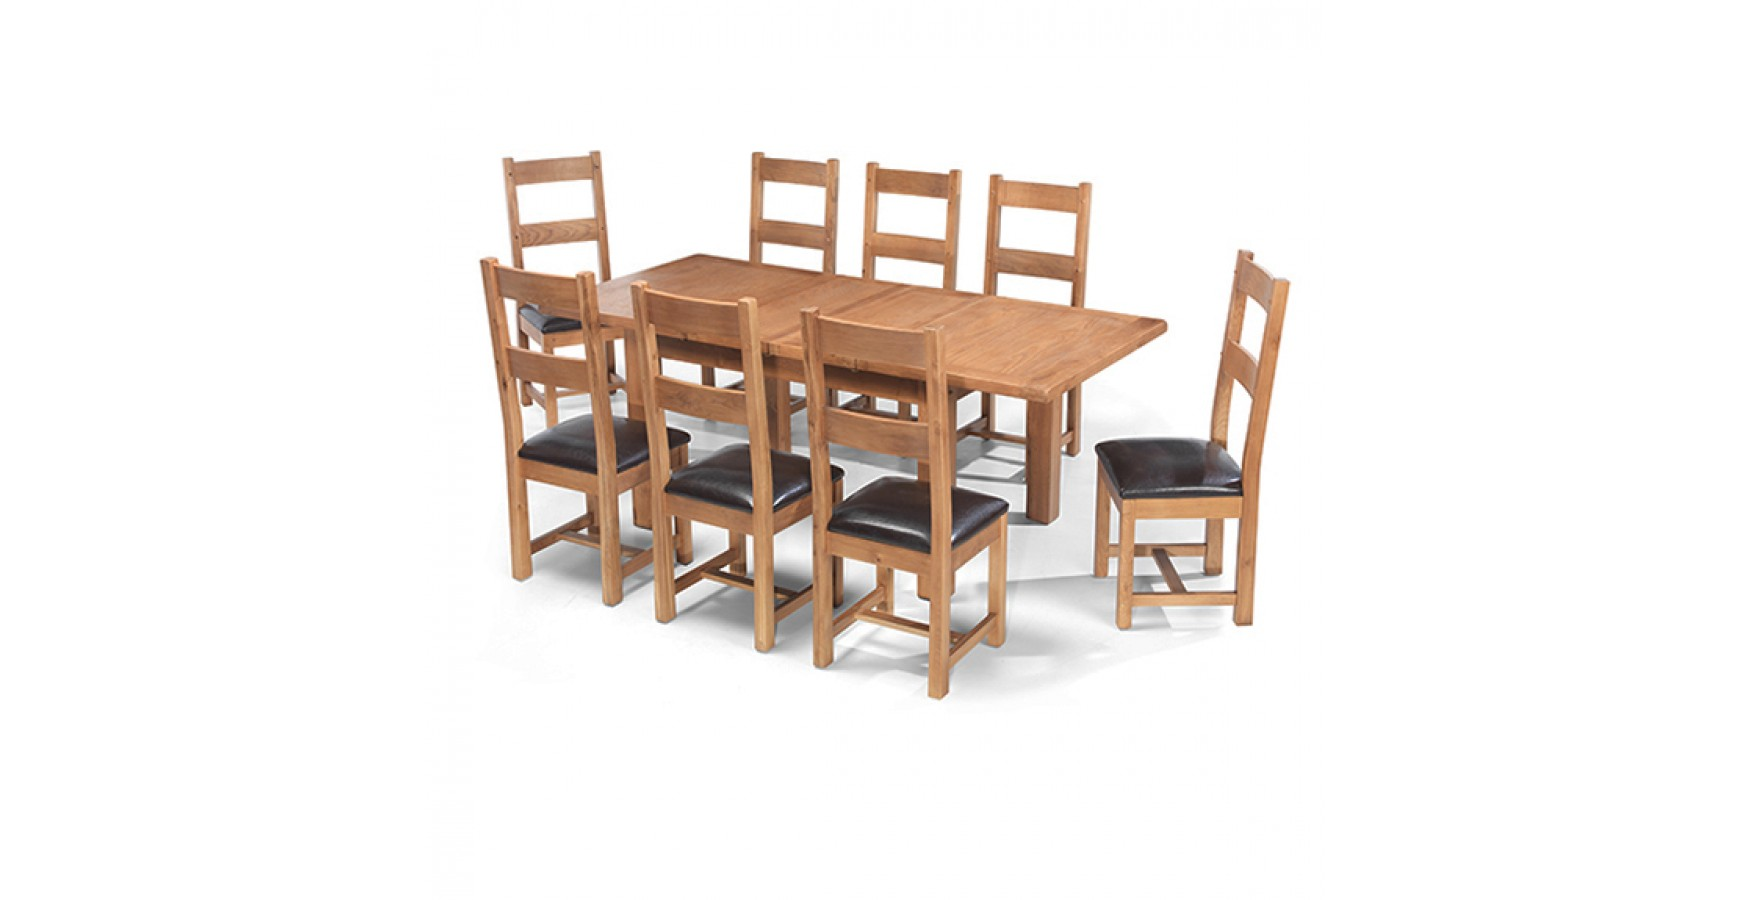 Dining Room Furniture Rustic Rustic Oak 132 198 Cm Extending Dining Table And 8 Chairs